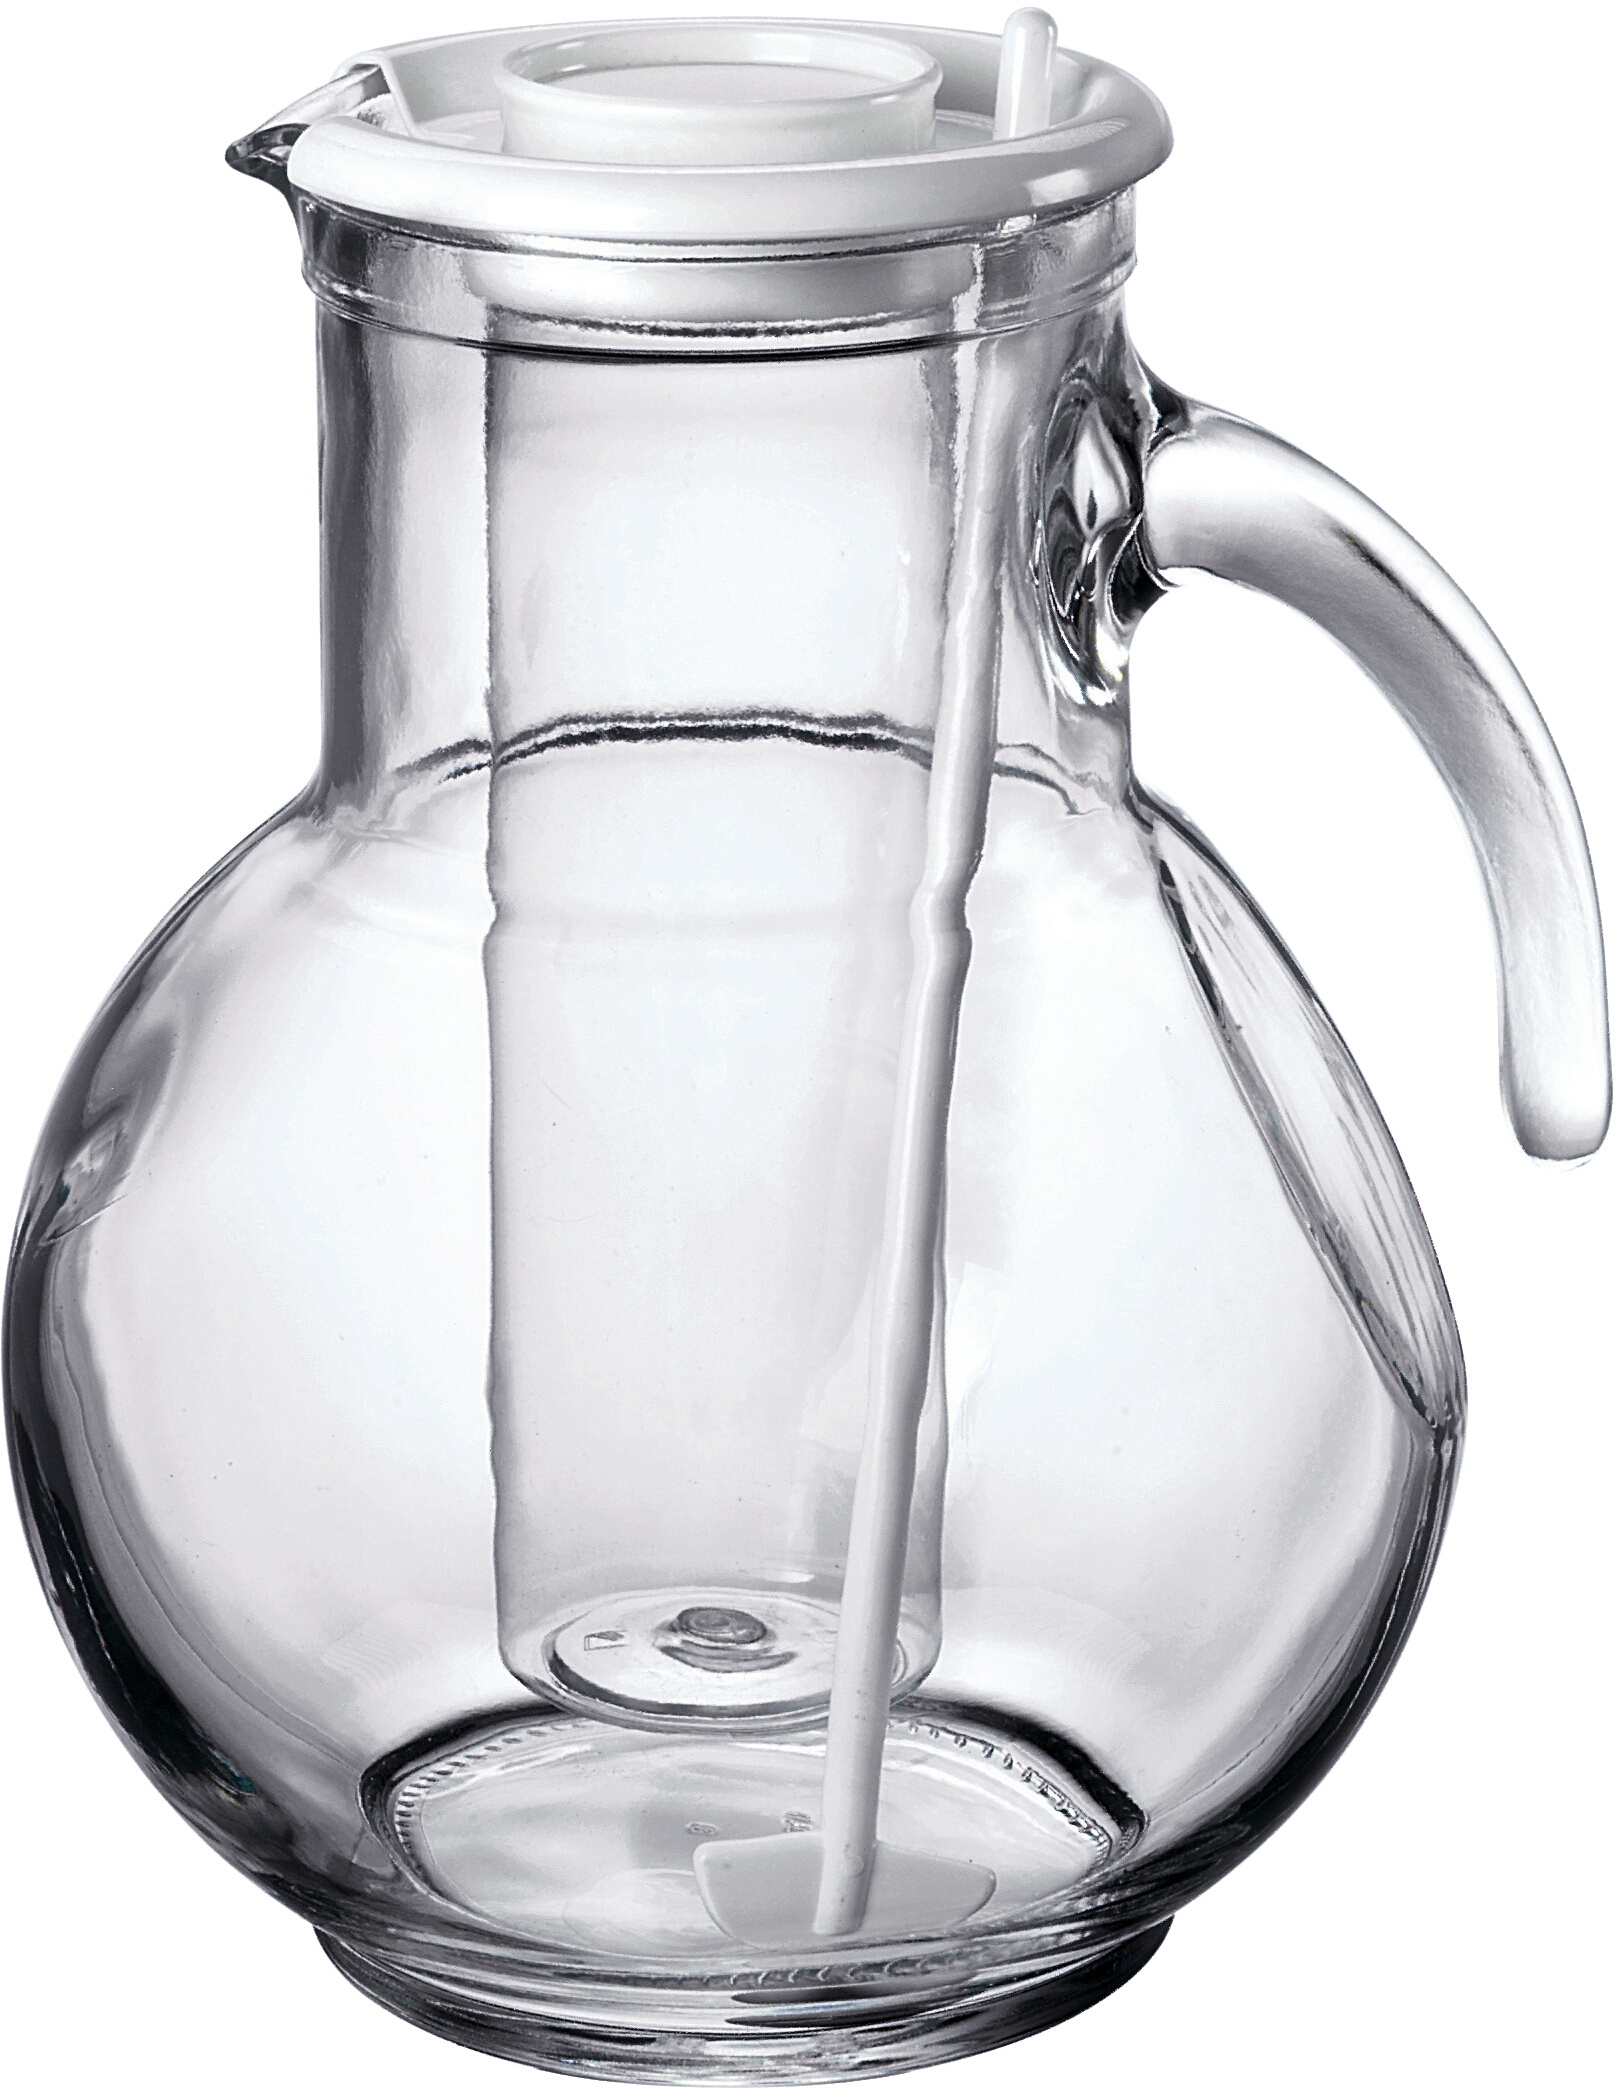 Small Glass Pitcher With Lid Bormioli Rocco Kufra Glass 2 15 Liter Pitcher With Ice